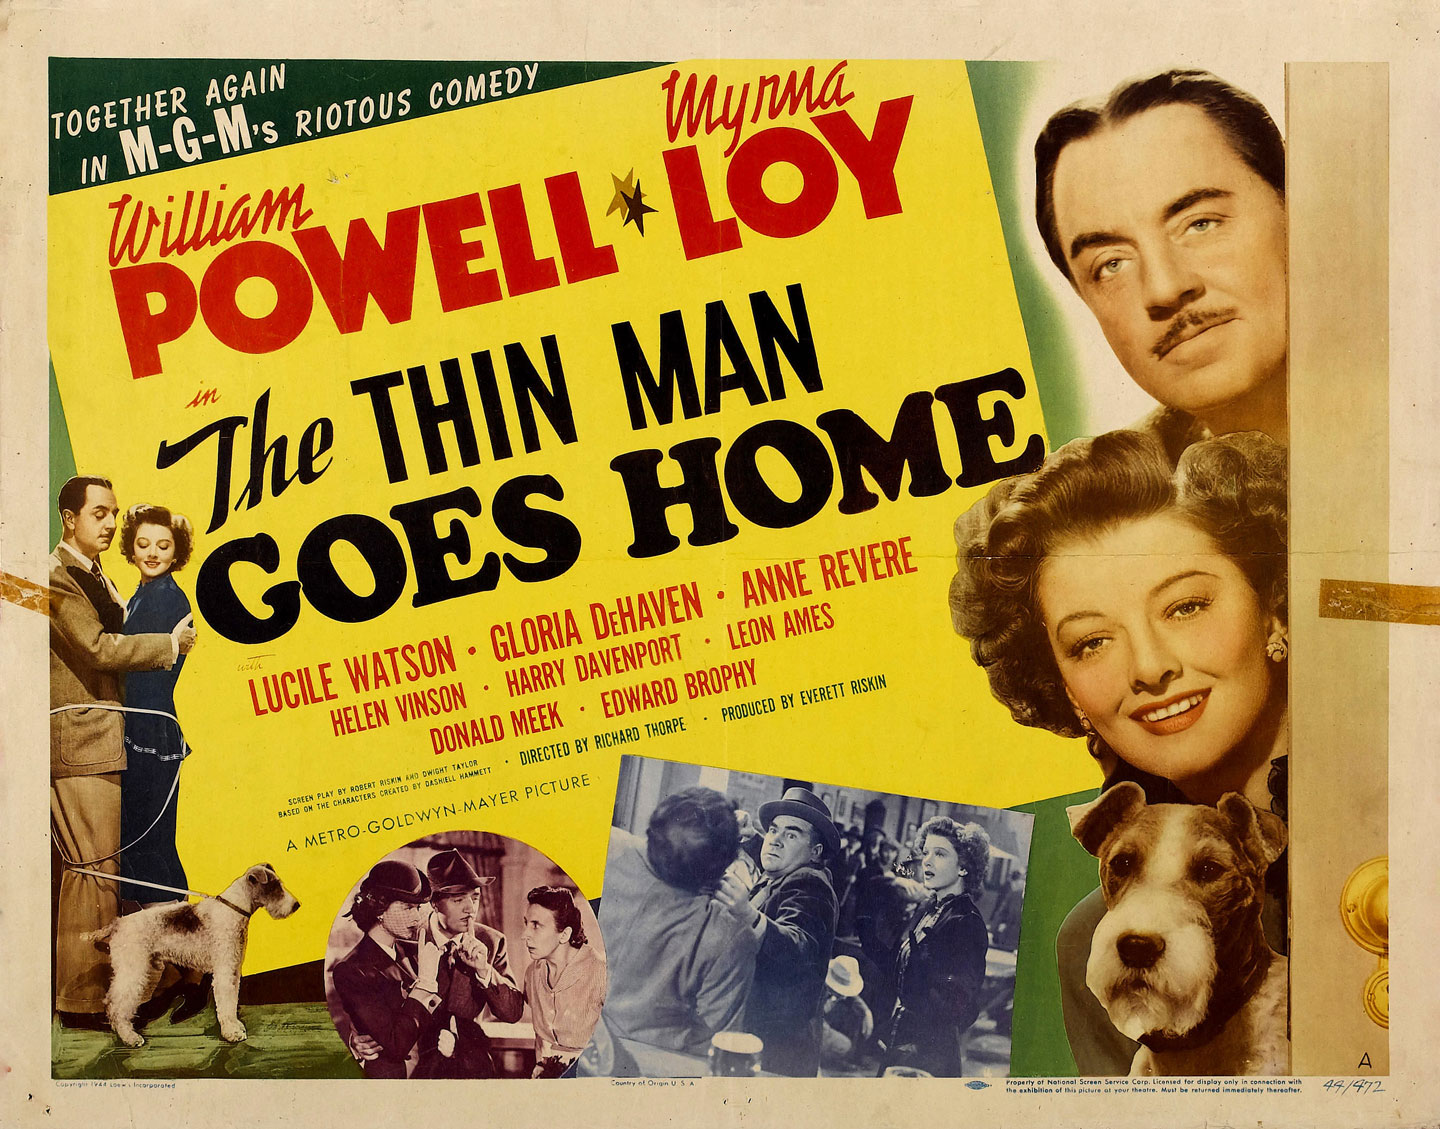 the thin man goes home half sheet movie poster